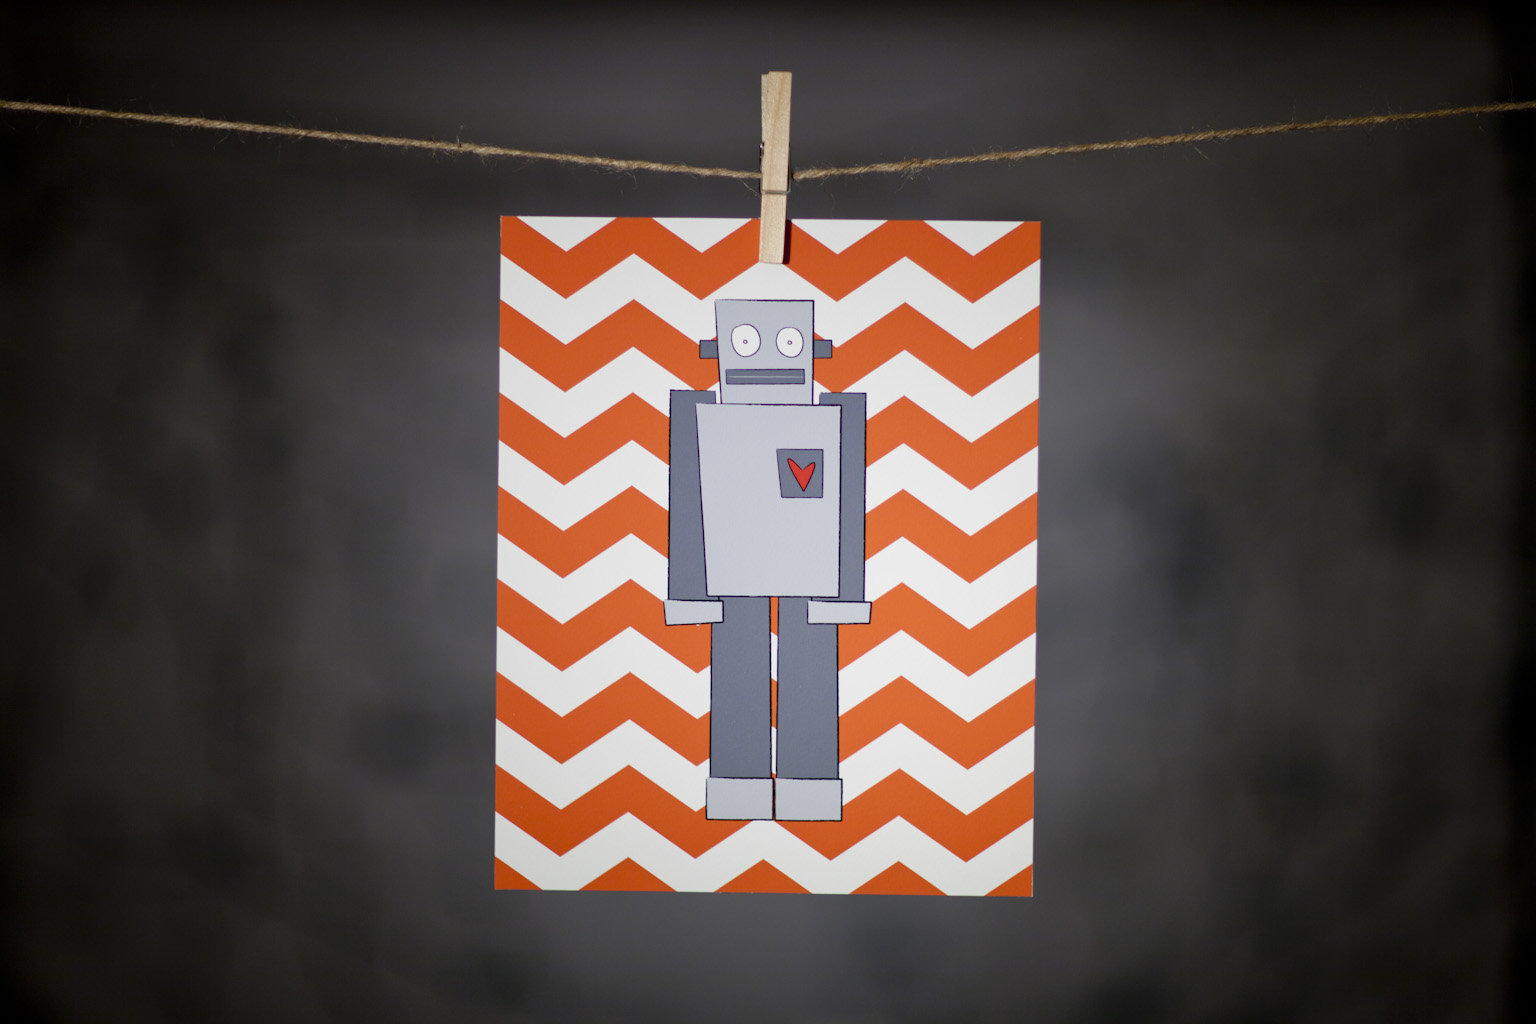 pURCHASE hEREthis super cool robot is sure to spruce up any kid's room or nursery.  the 8x10{quote} print is an original DoodleGirl Designs illustration.  packaged with a cardboard backing // wrapped in a cellophane sleeve.crafted + printed in colorado, usa.